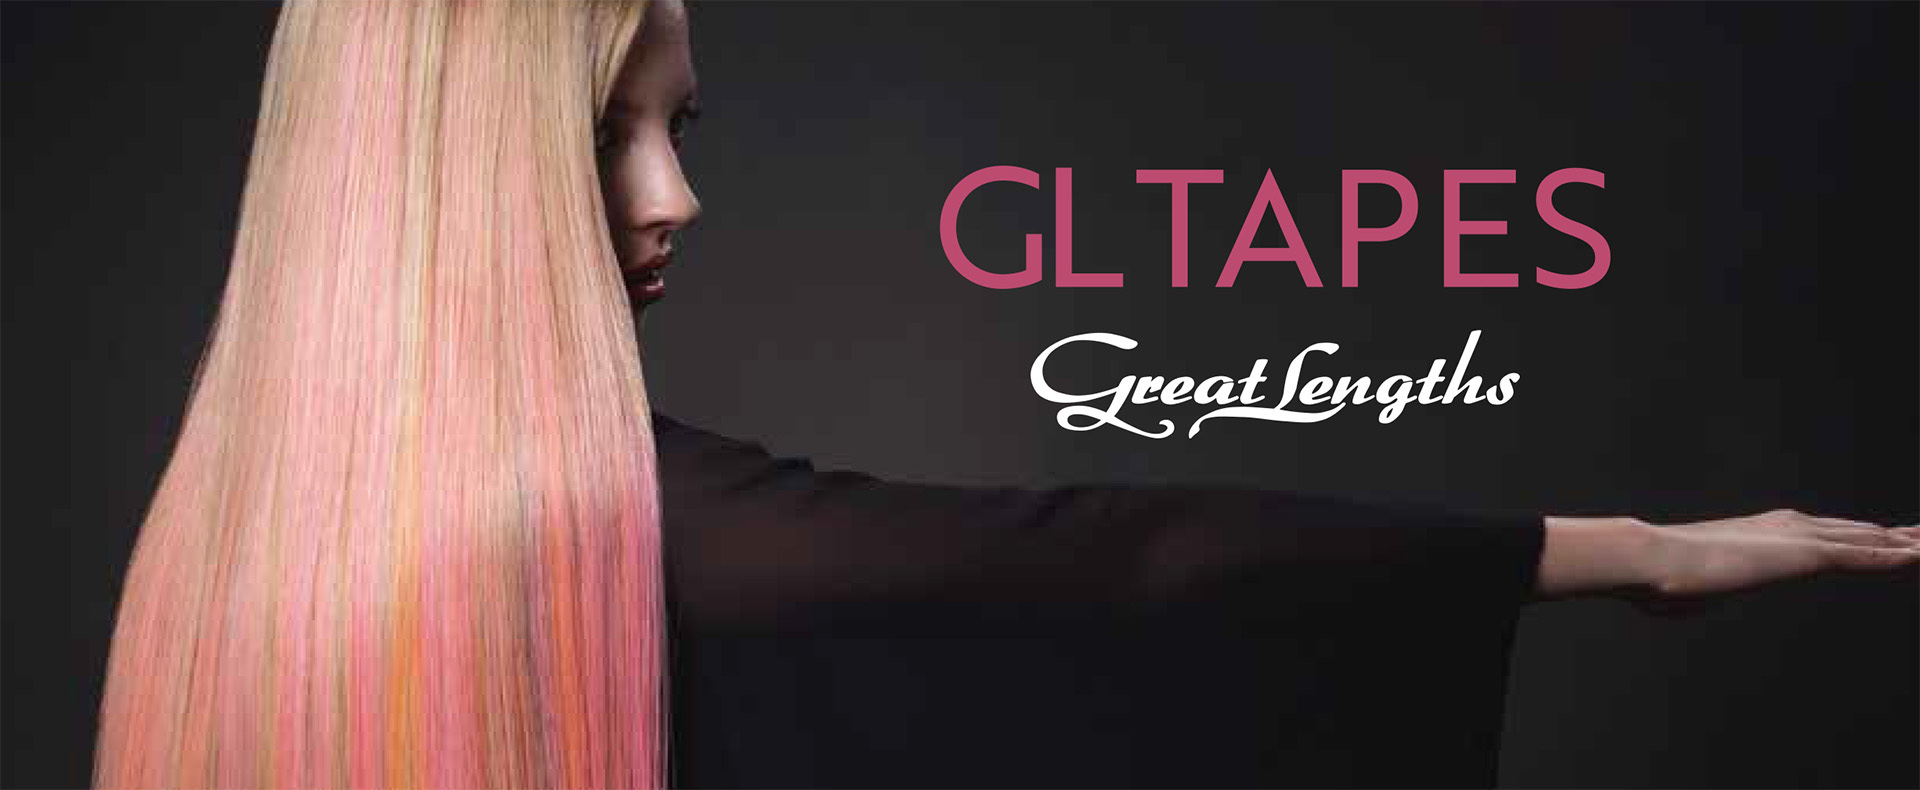 GL TAPES (© Great Lengths)